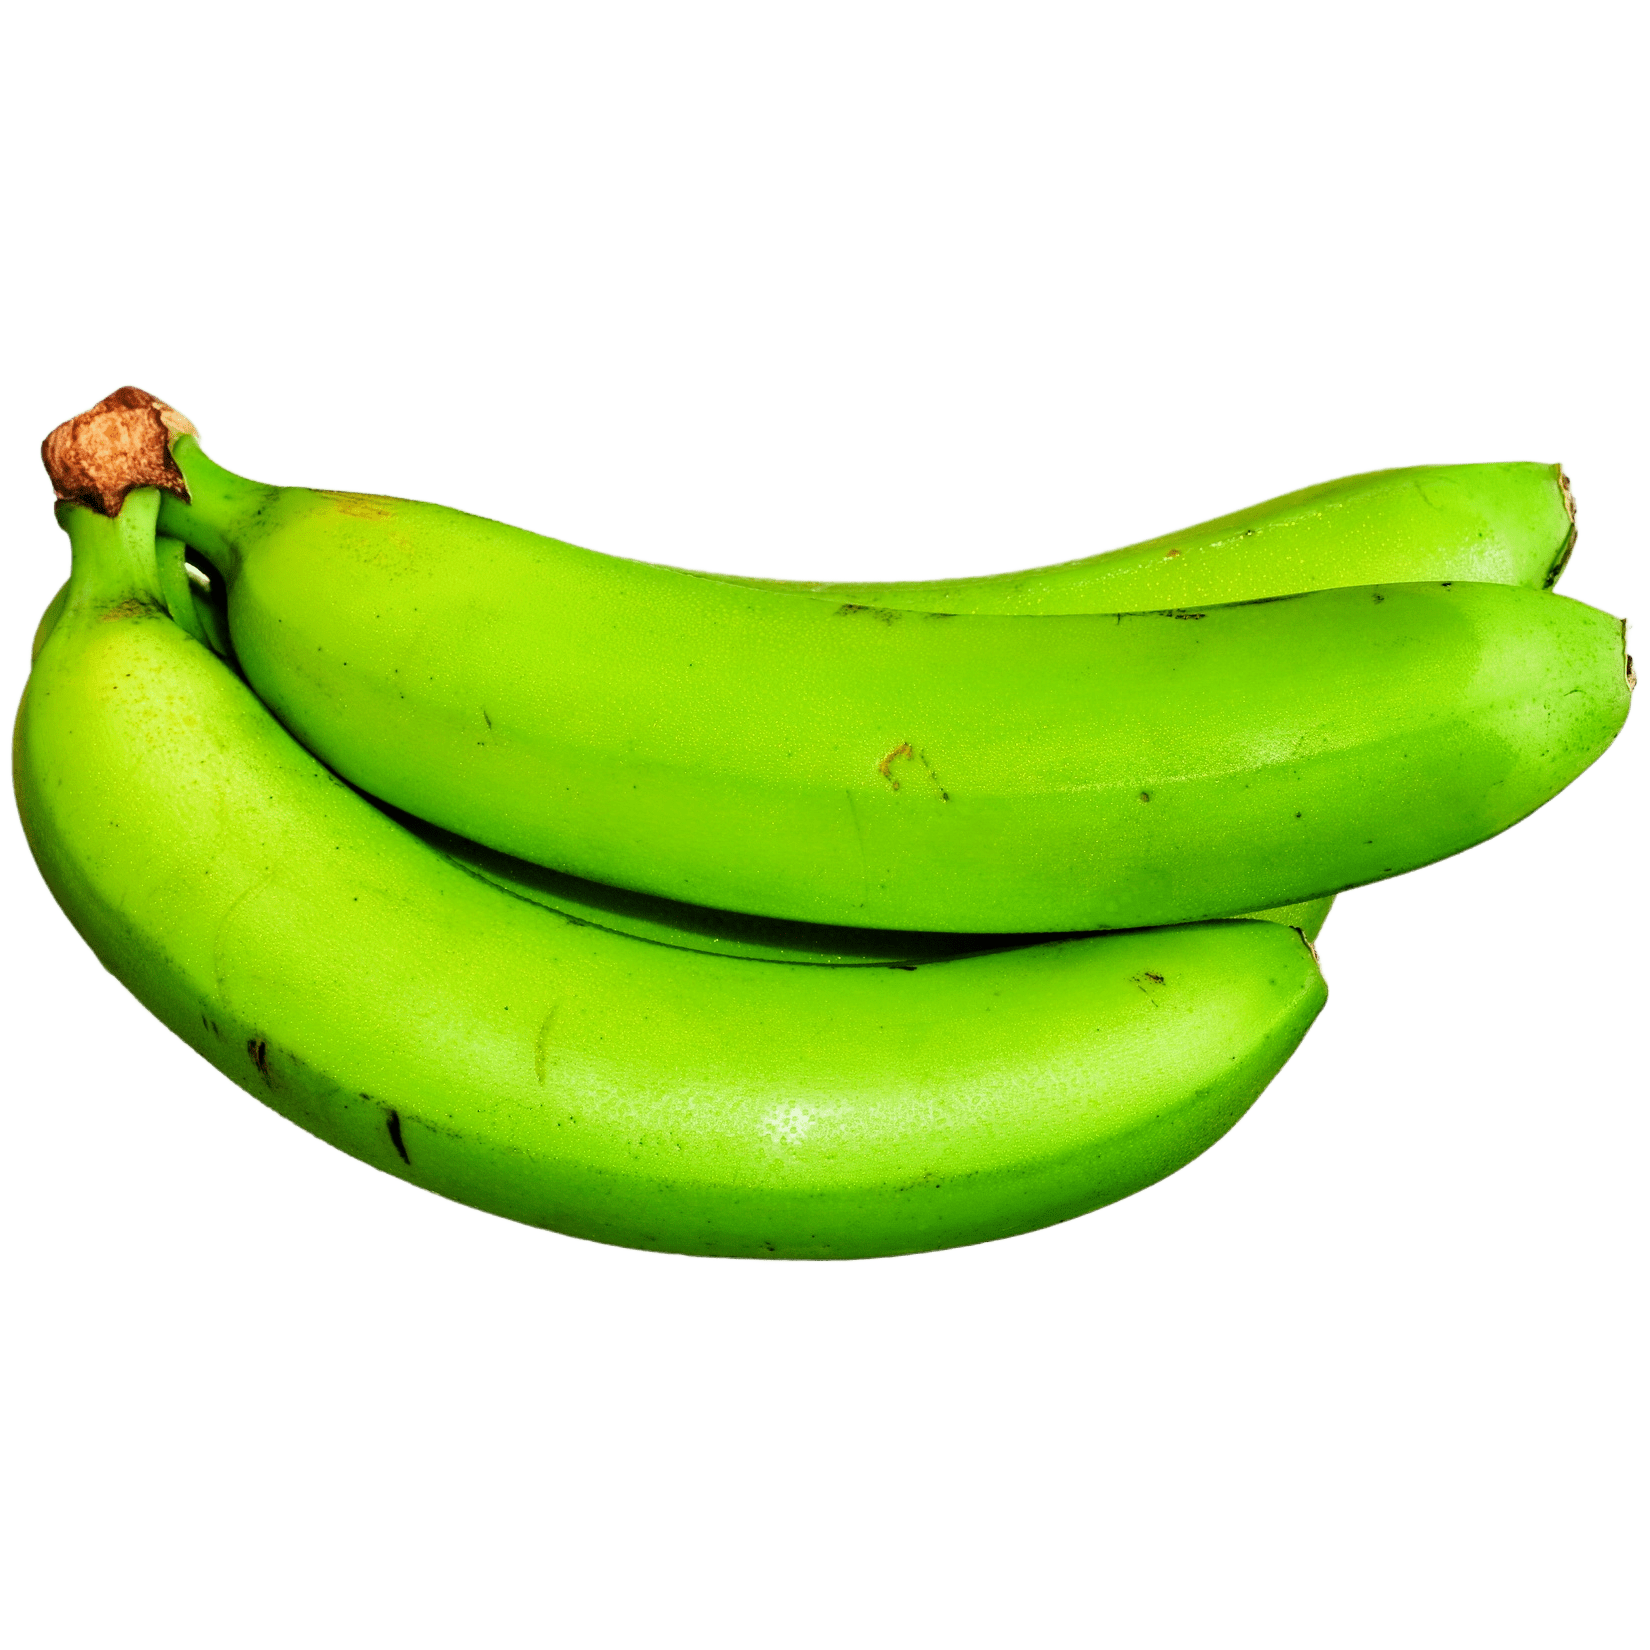 Green Banana Transparent Picture